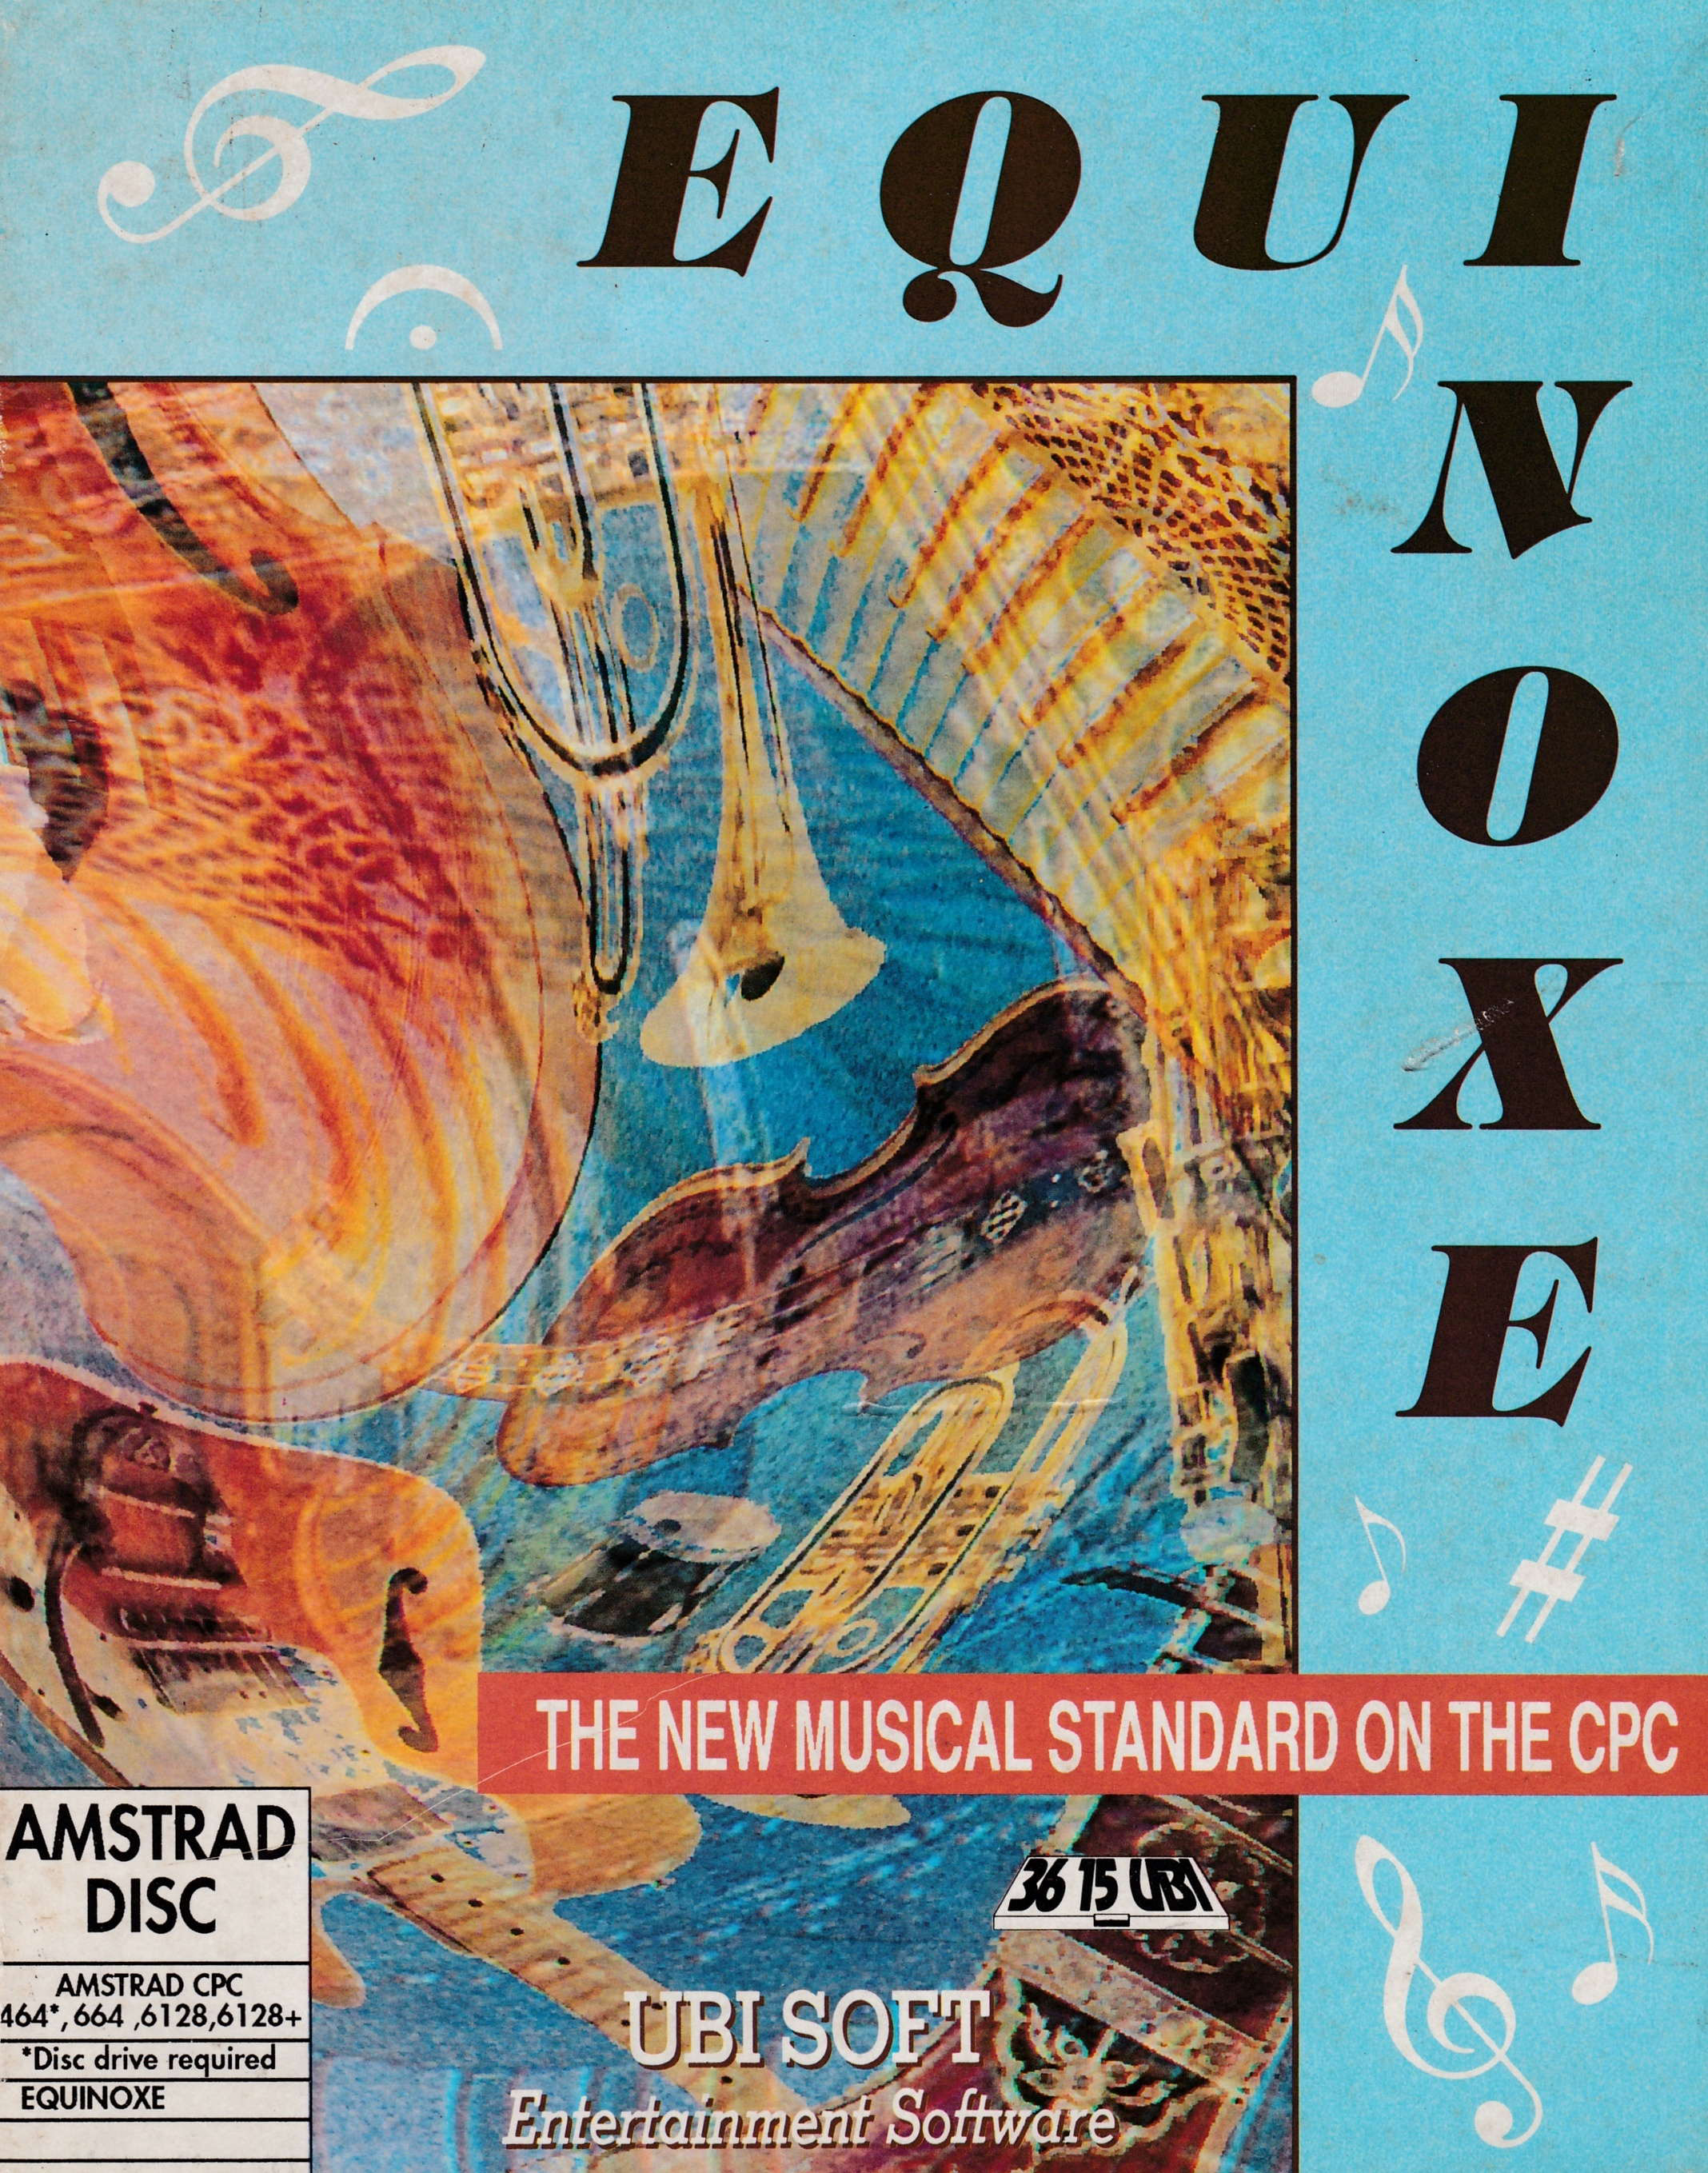 screenshot of the Amstrad CPC game Equinoxe by GameBase CPC